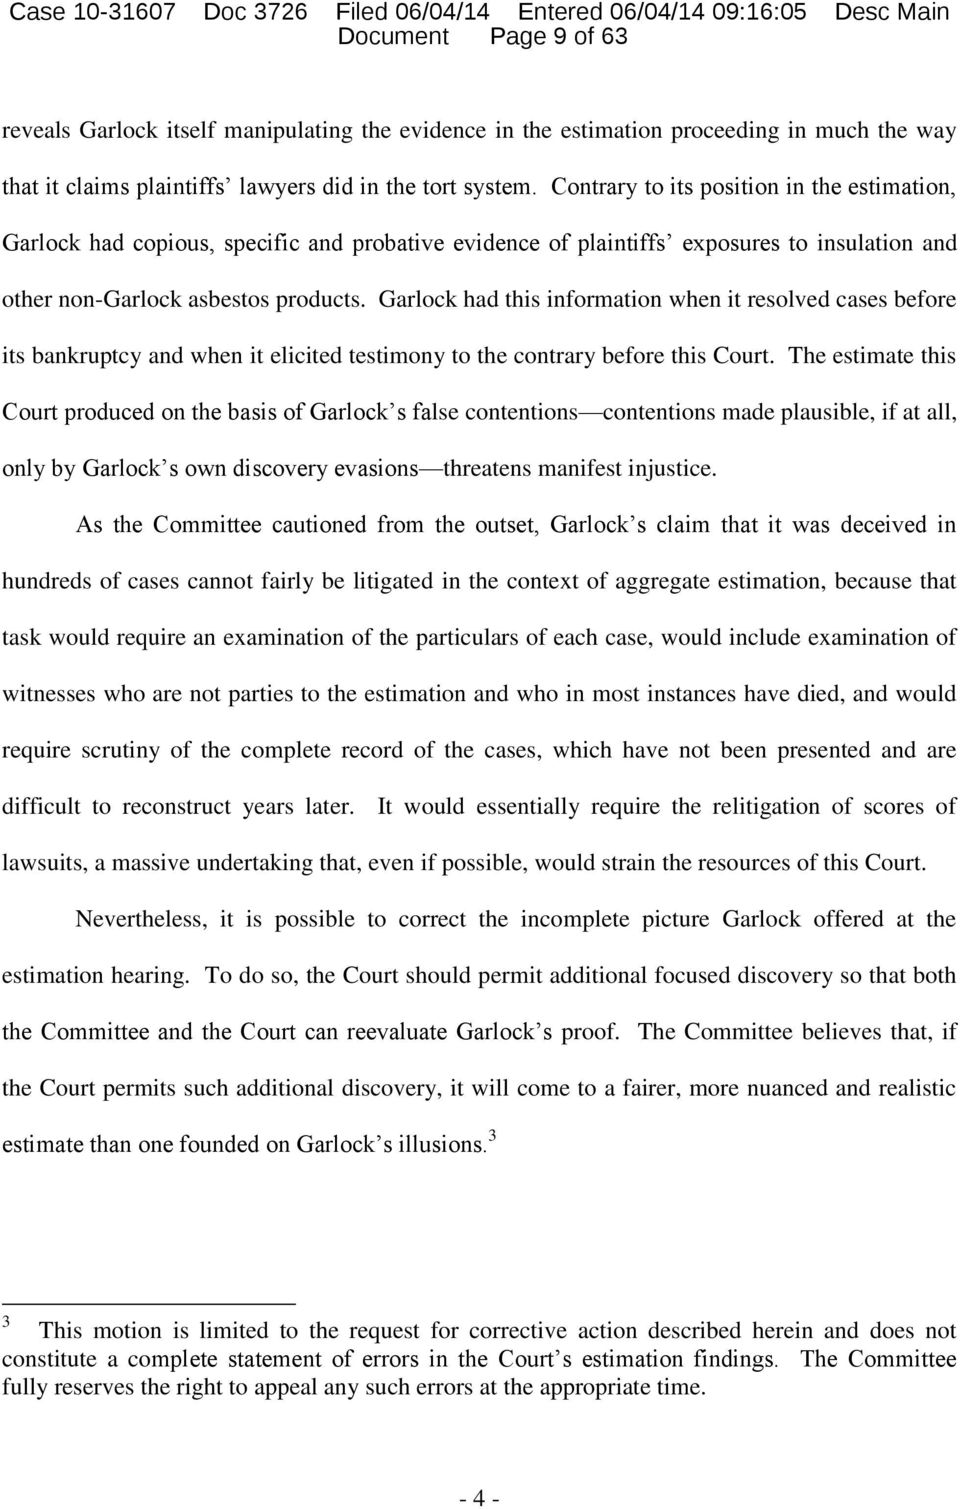 Garlock had this information when it resolved cases before its bankruptcy and when it elicited testimony to the contrary before this Court.